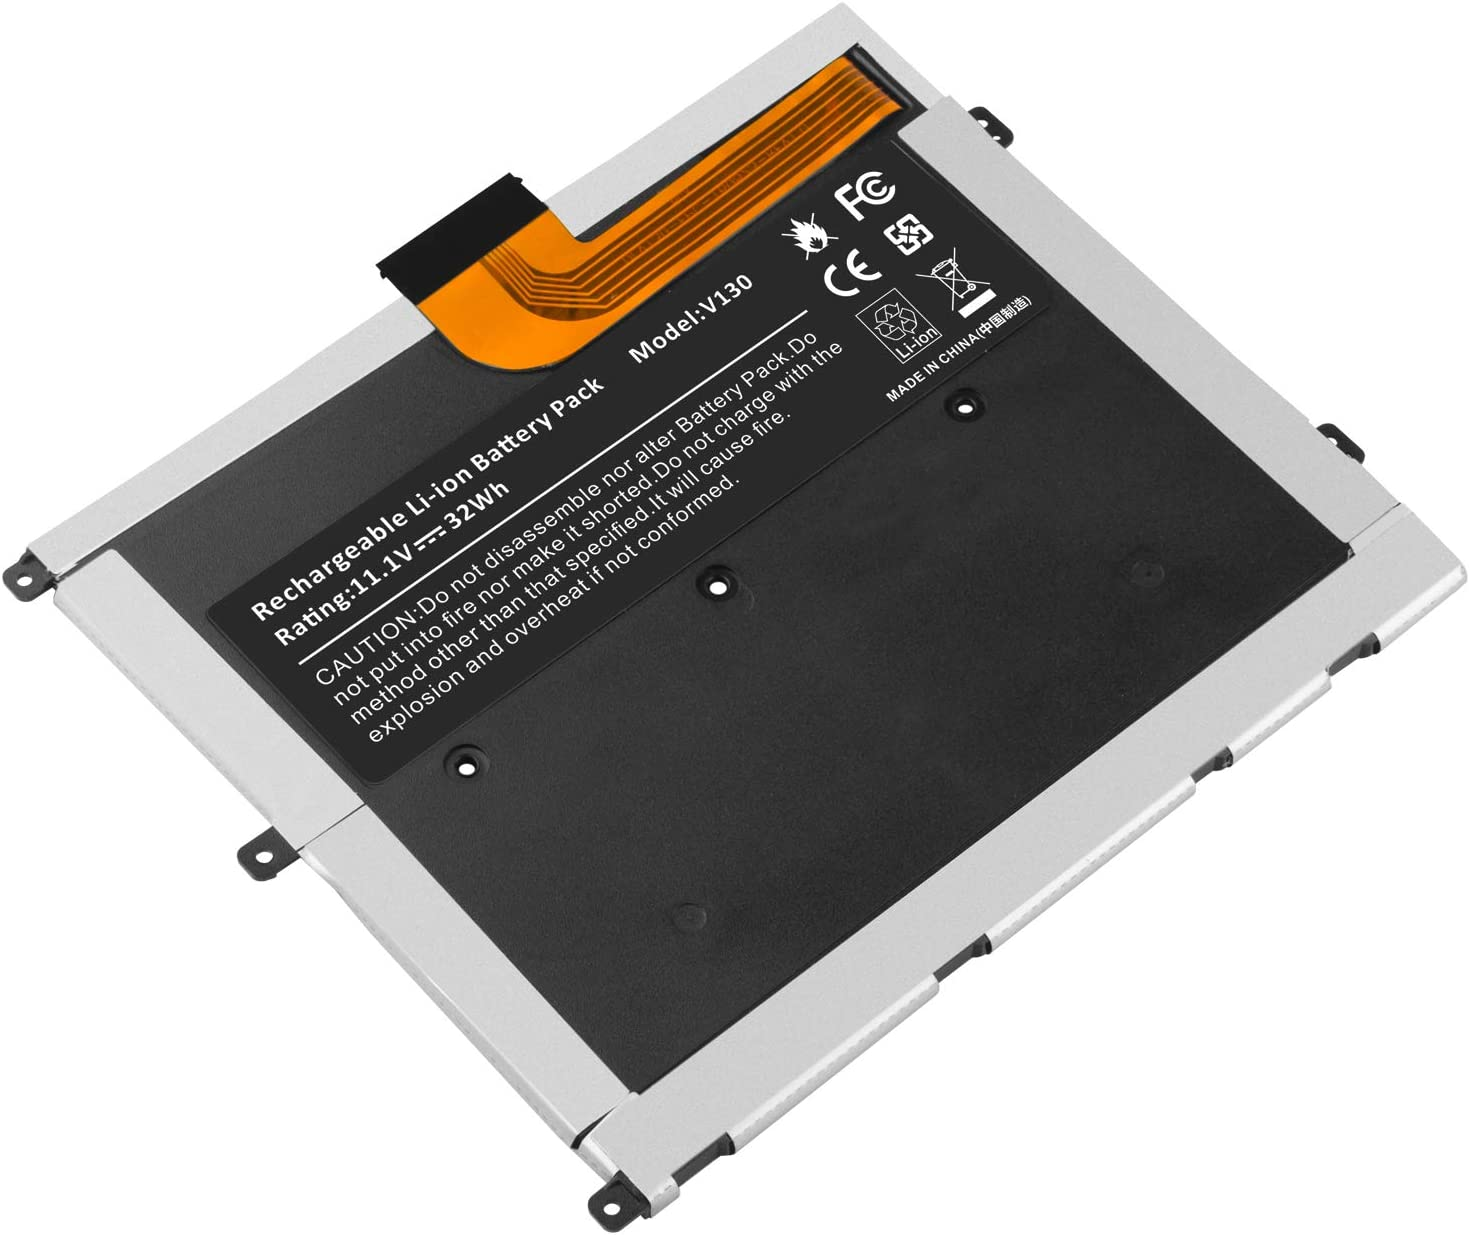 Laptop Battery for Dell Vostro V13 V130 V1300 V13Z, fit Part Number: 0449TX 0NTG4J 0PRW6G PRW6G T1G6P